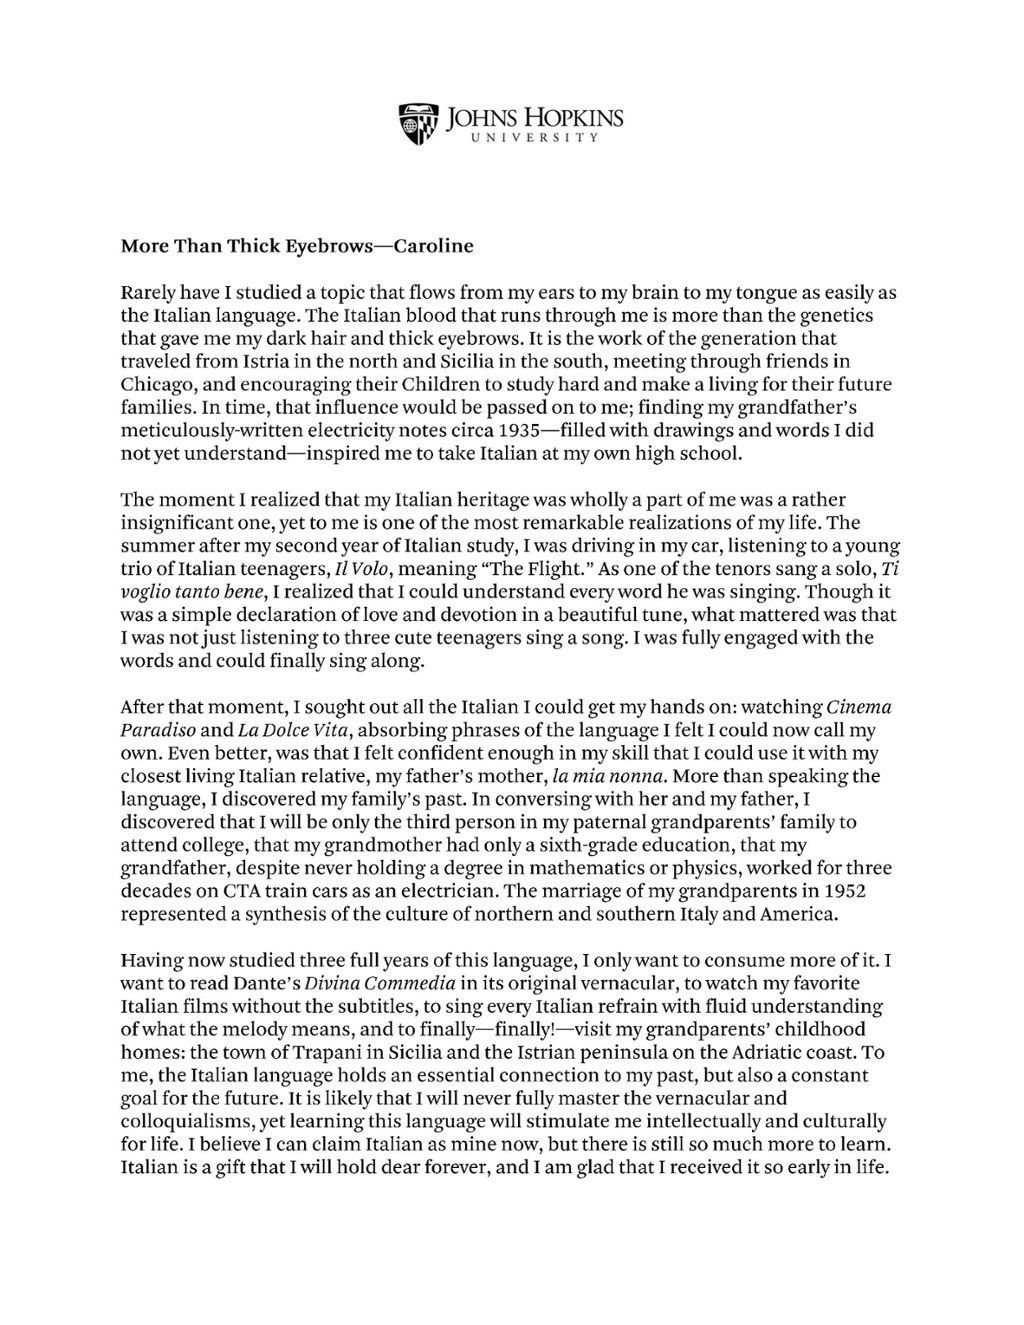 010 Rare College Application Essay Format Example Sample  Examples OutlineFull